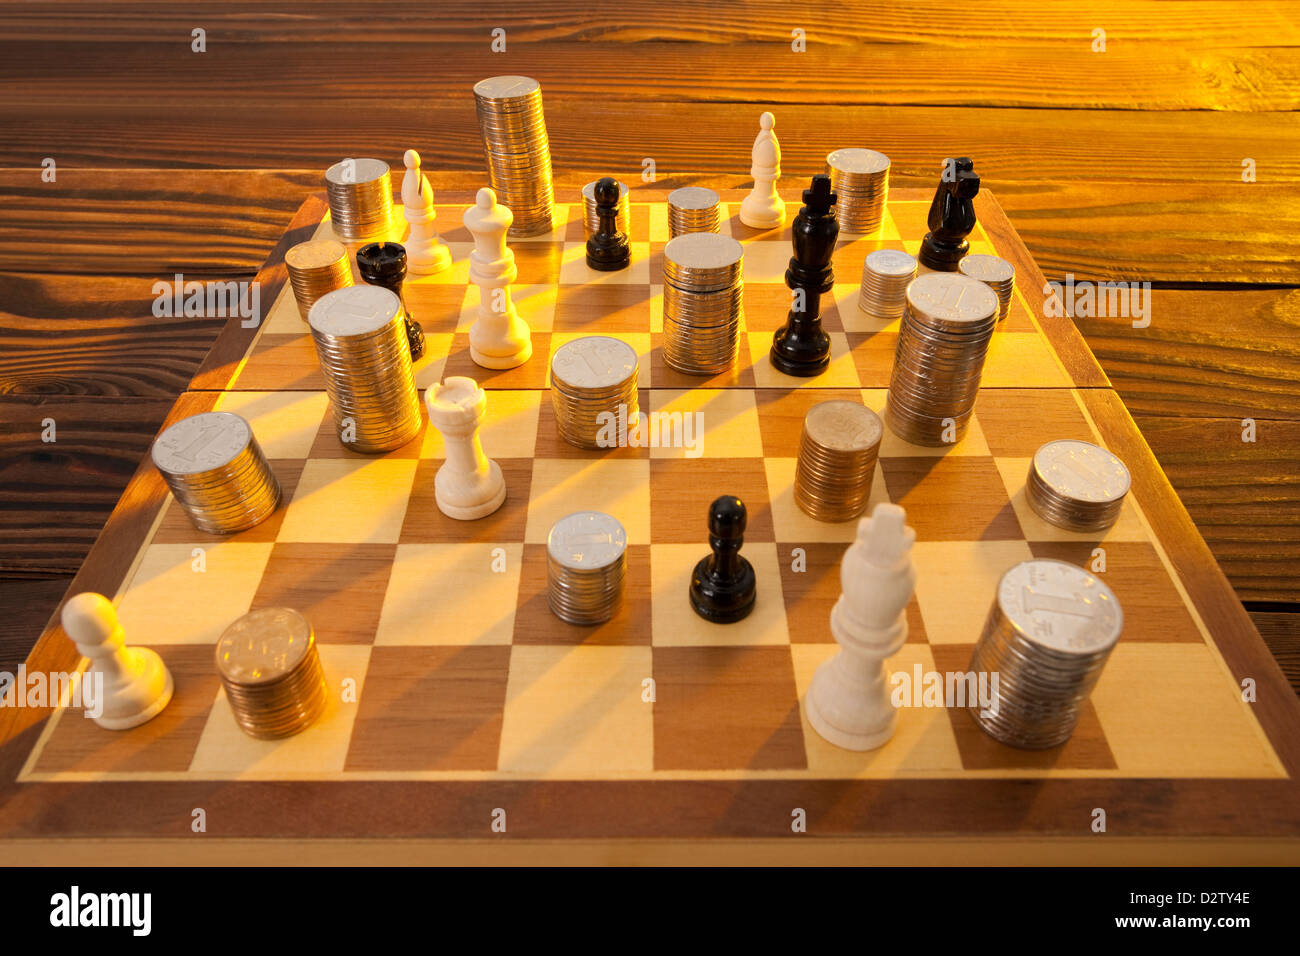 Coins And Chess Pieces On Chess Board Stock Photo 53408558 Alamy